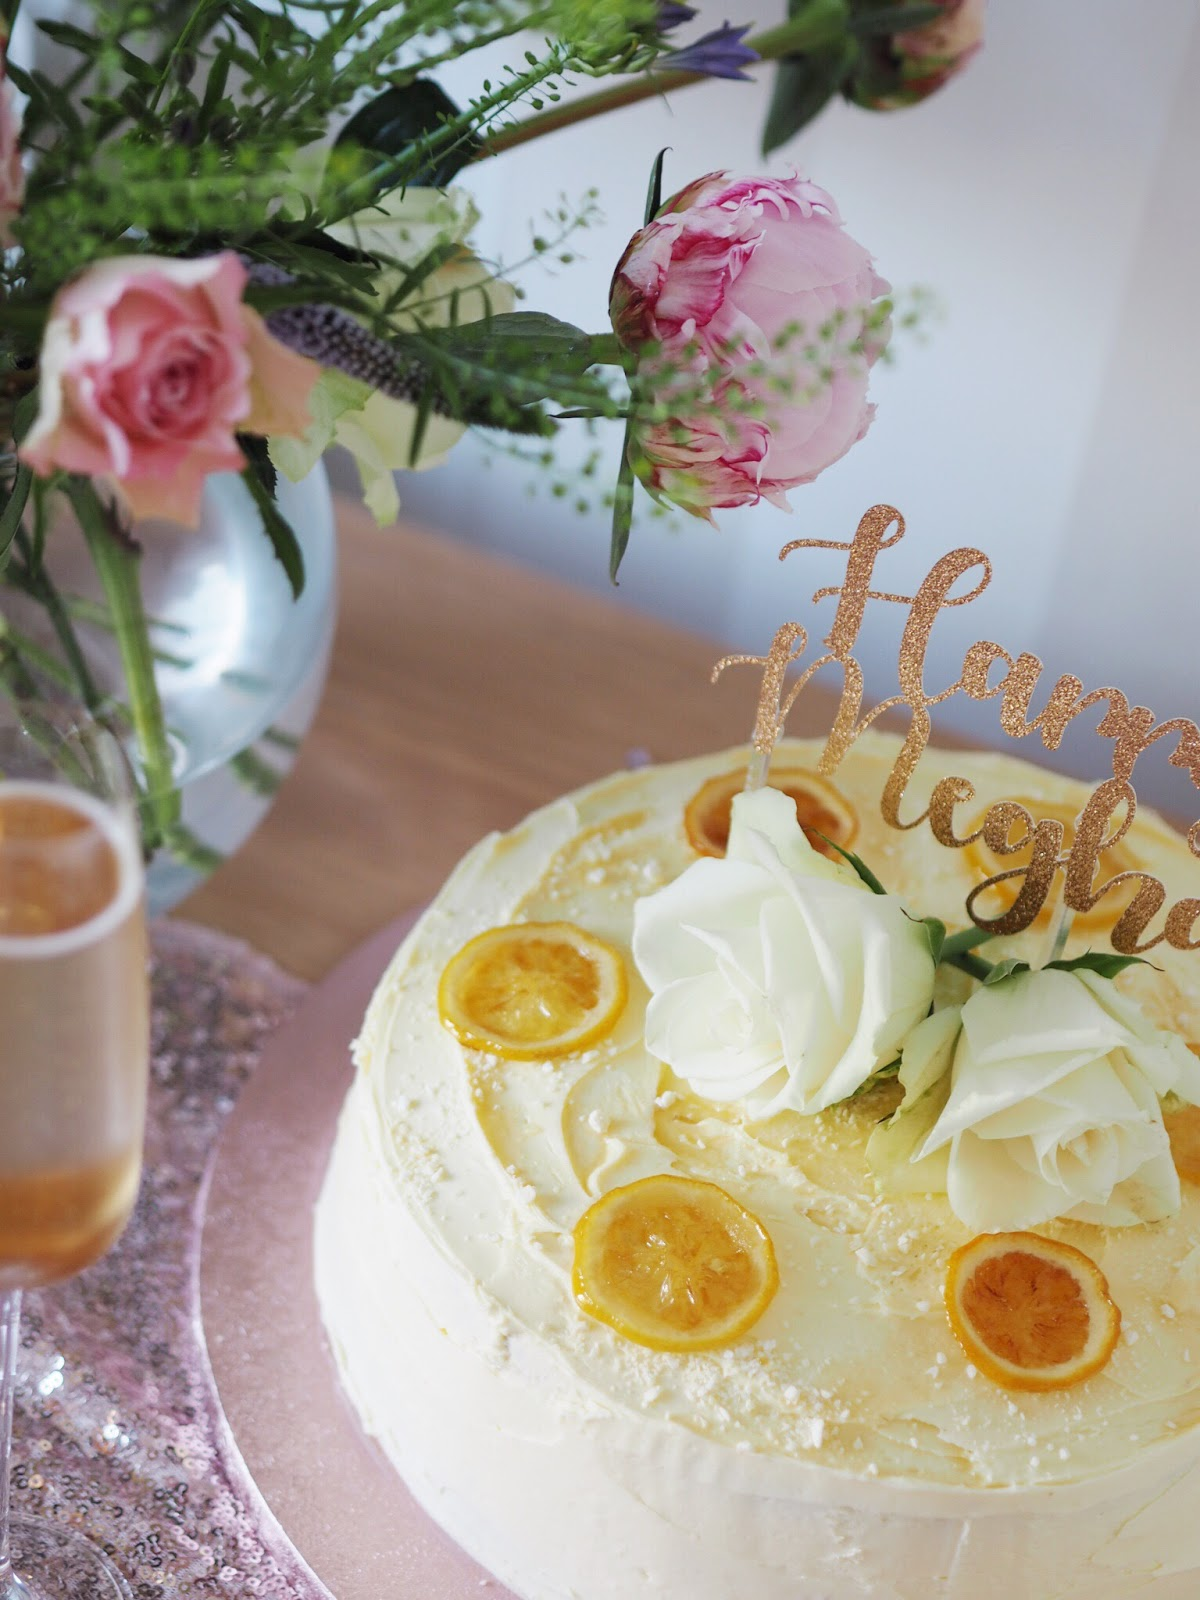 Lemon & Elderflower royal wedding cake recipe with prosecco and peonies